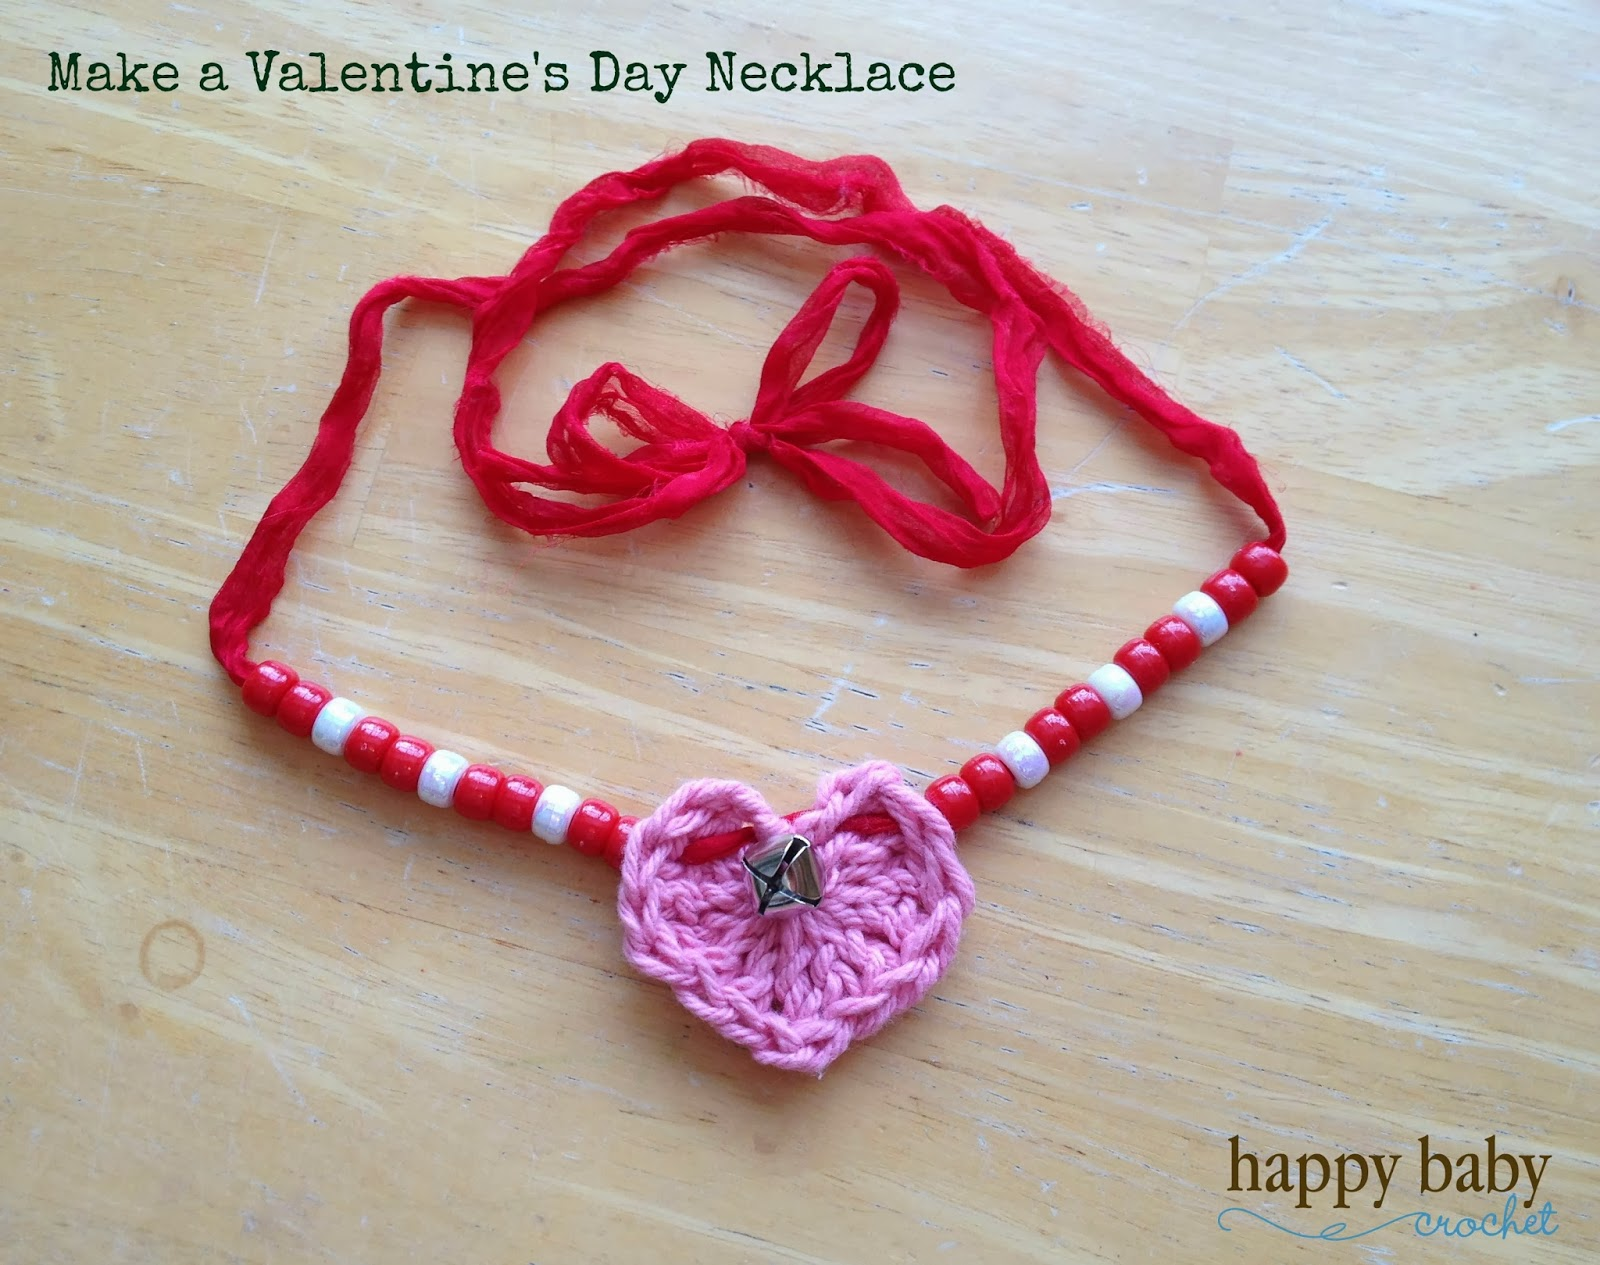 http://www.happybabycrochet.com/2015/02/valentines-day-crochet-heart-necklace.html